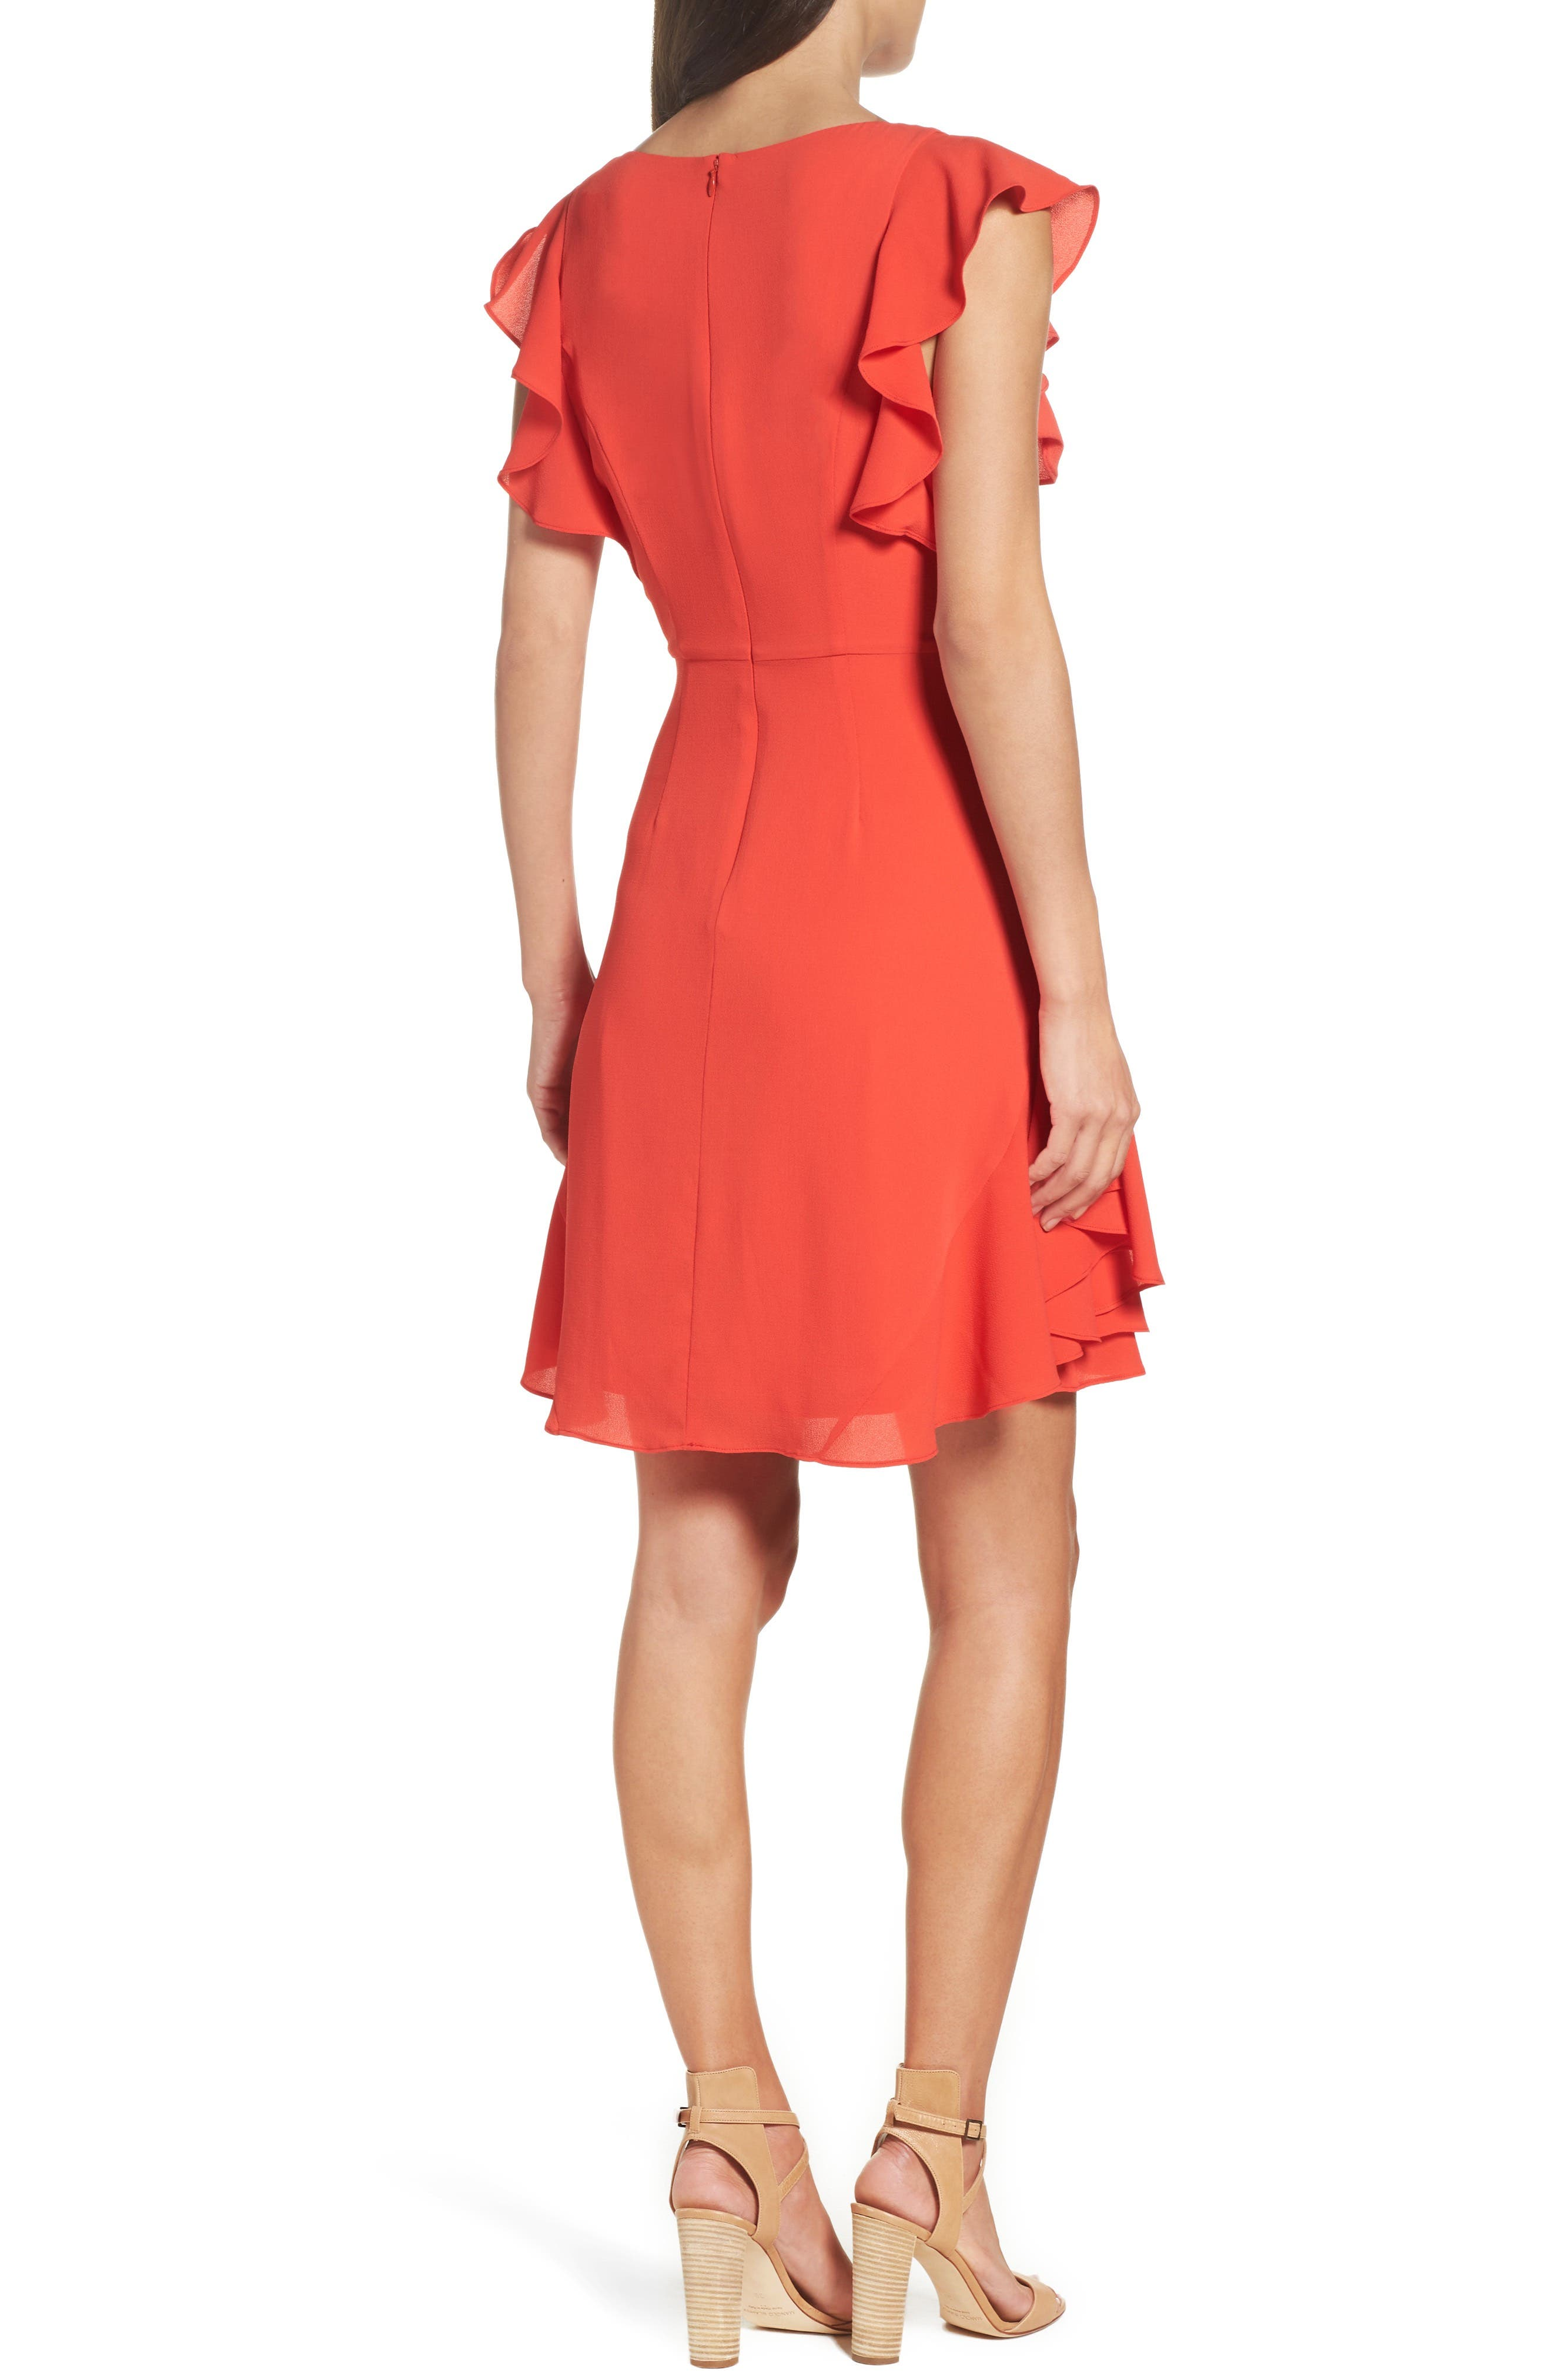 Ruffle Fit & Flare Dress,                             Alternate thumbnail 2, color,                             606